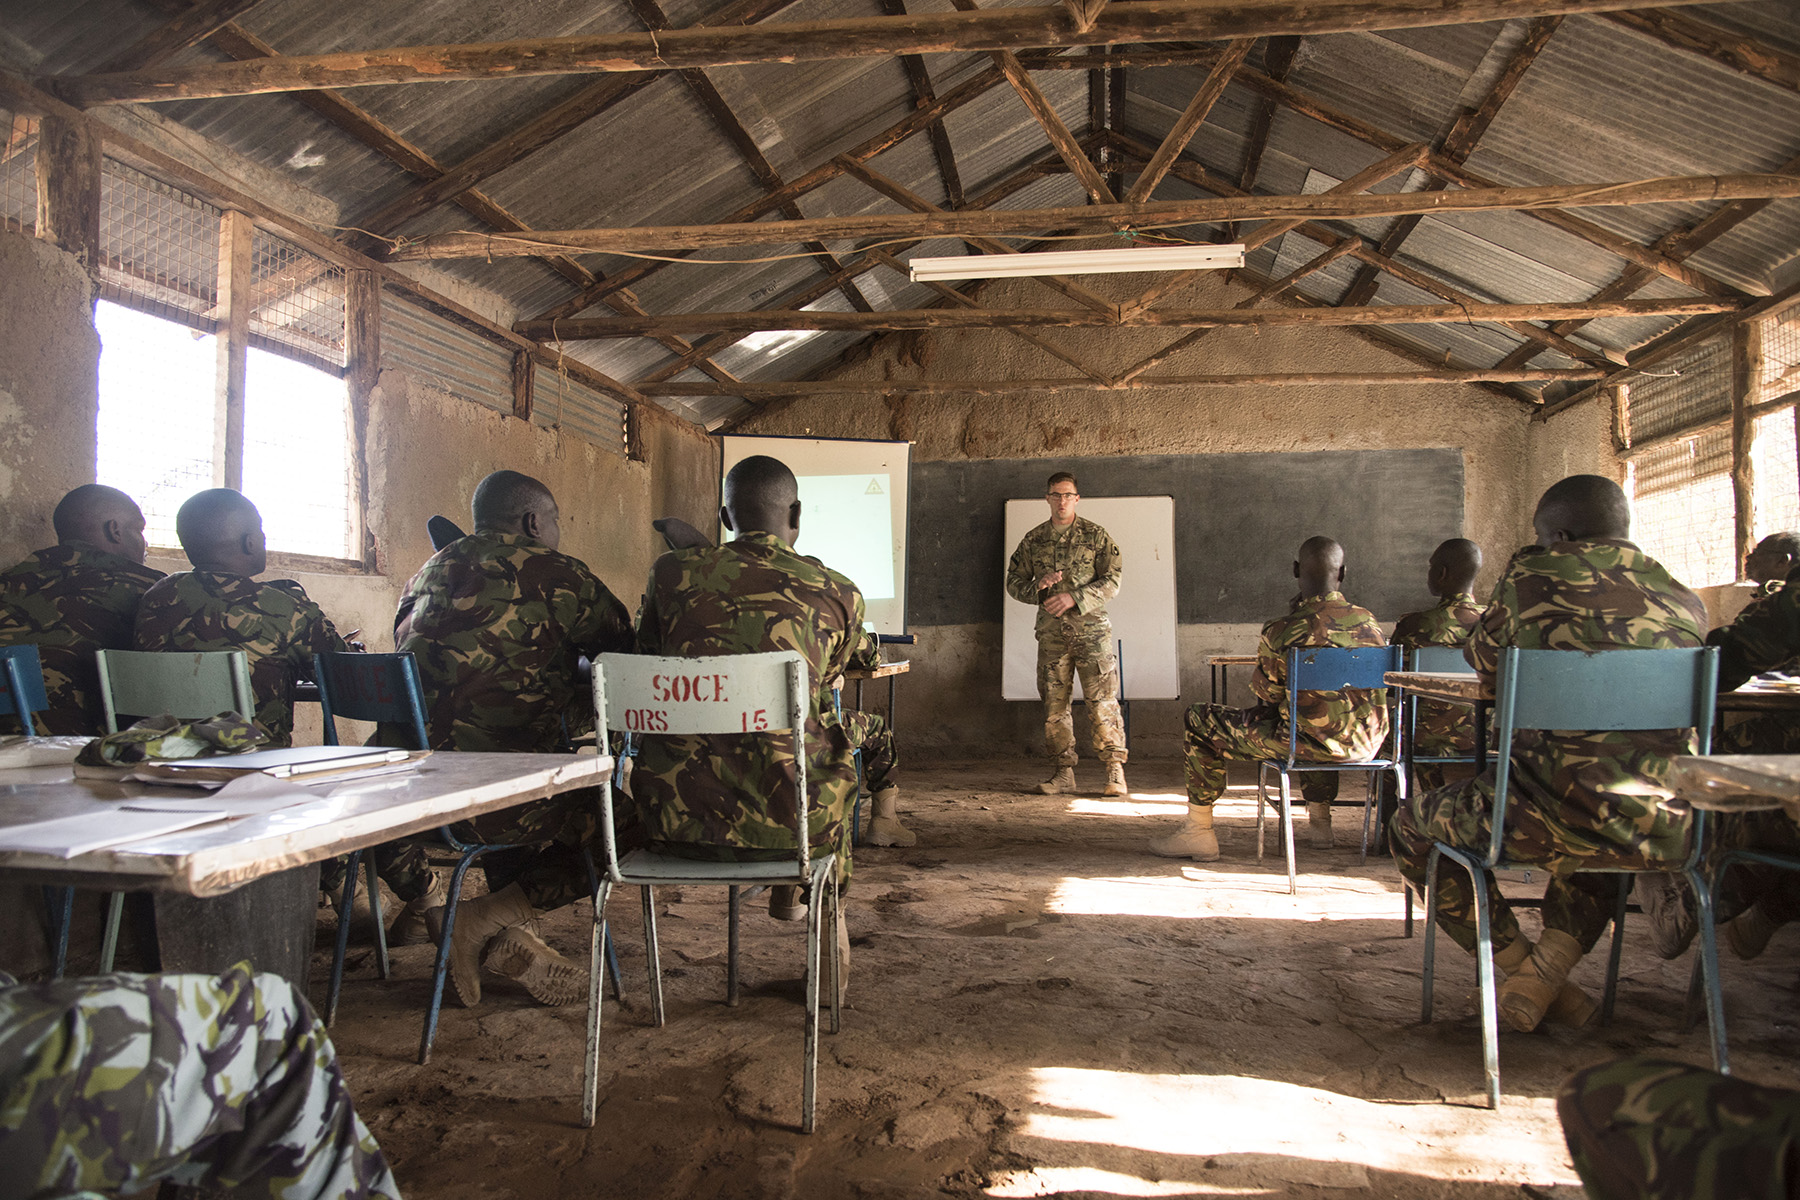 U.S. Army Staff Sgt. Charles Wirks, 1st Battalion, 124th Infantry Regiment and Raven master trainer, teaches members of the Kenya Defense Forces Military Intelligence Battalion how to tactfully use the AeroVironment RQ-11 Raven, an unmanned aerial vehicle, Sept. 13, 2016, at a Kenyan training facility. The KDF soldiers received basic training on assembly, disassembly, repair, and preventative maintenance in regard to basic mission planning and advanced flight plans for the Raven.  (U.S. Air Force photo by Staff Sgt. Tiffany DeNault)